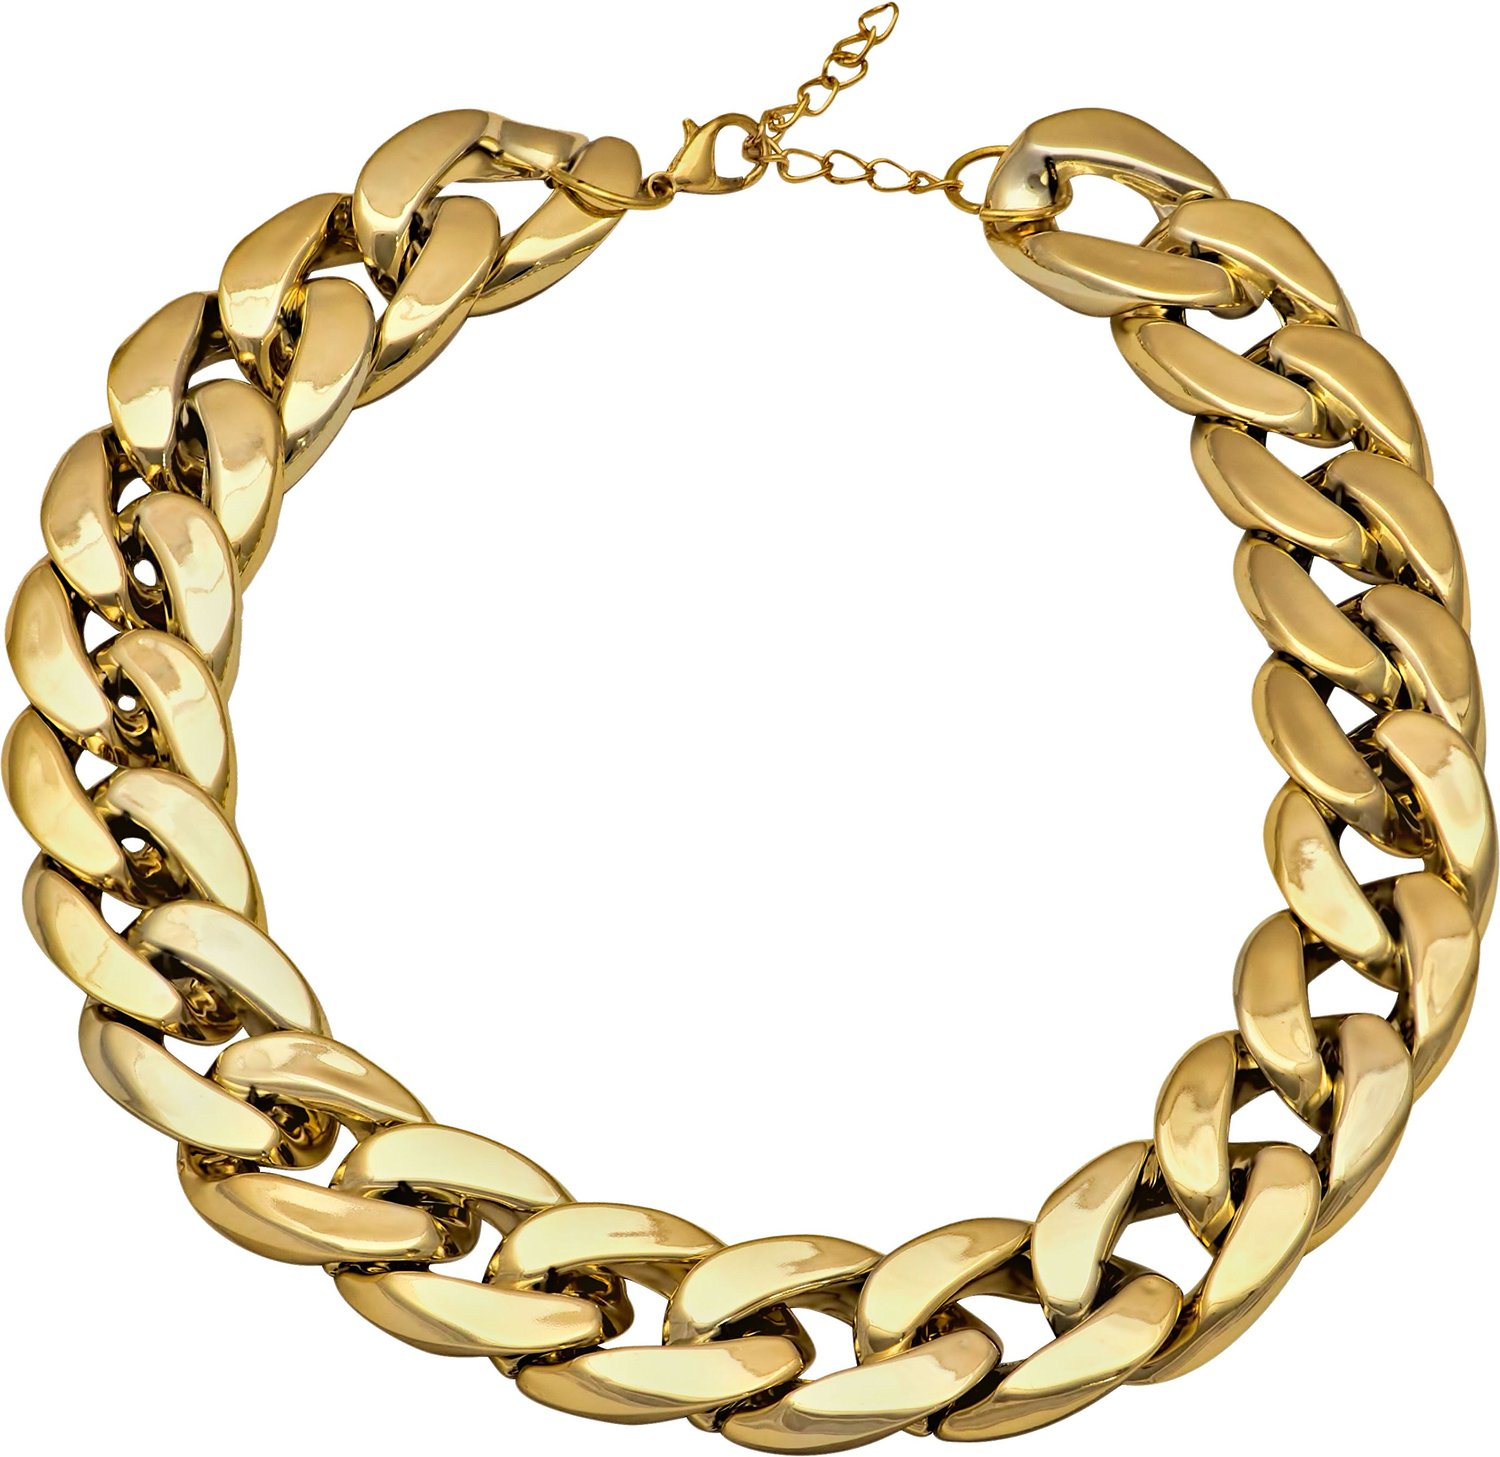 Amazon.com: Gold Tone Thick Chunky Chain Link Celebrity Inspired Choker Style Statement Necklace: Jewelry